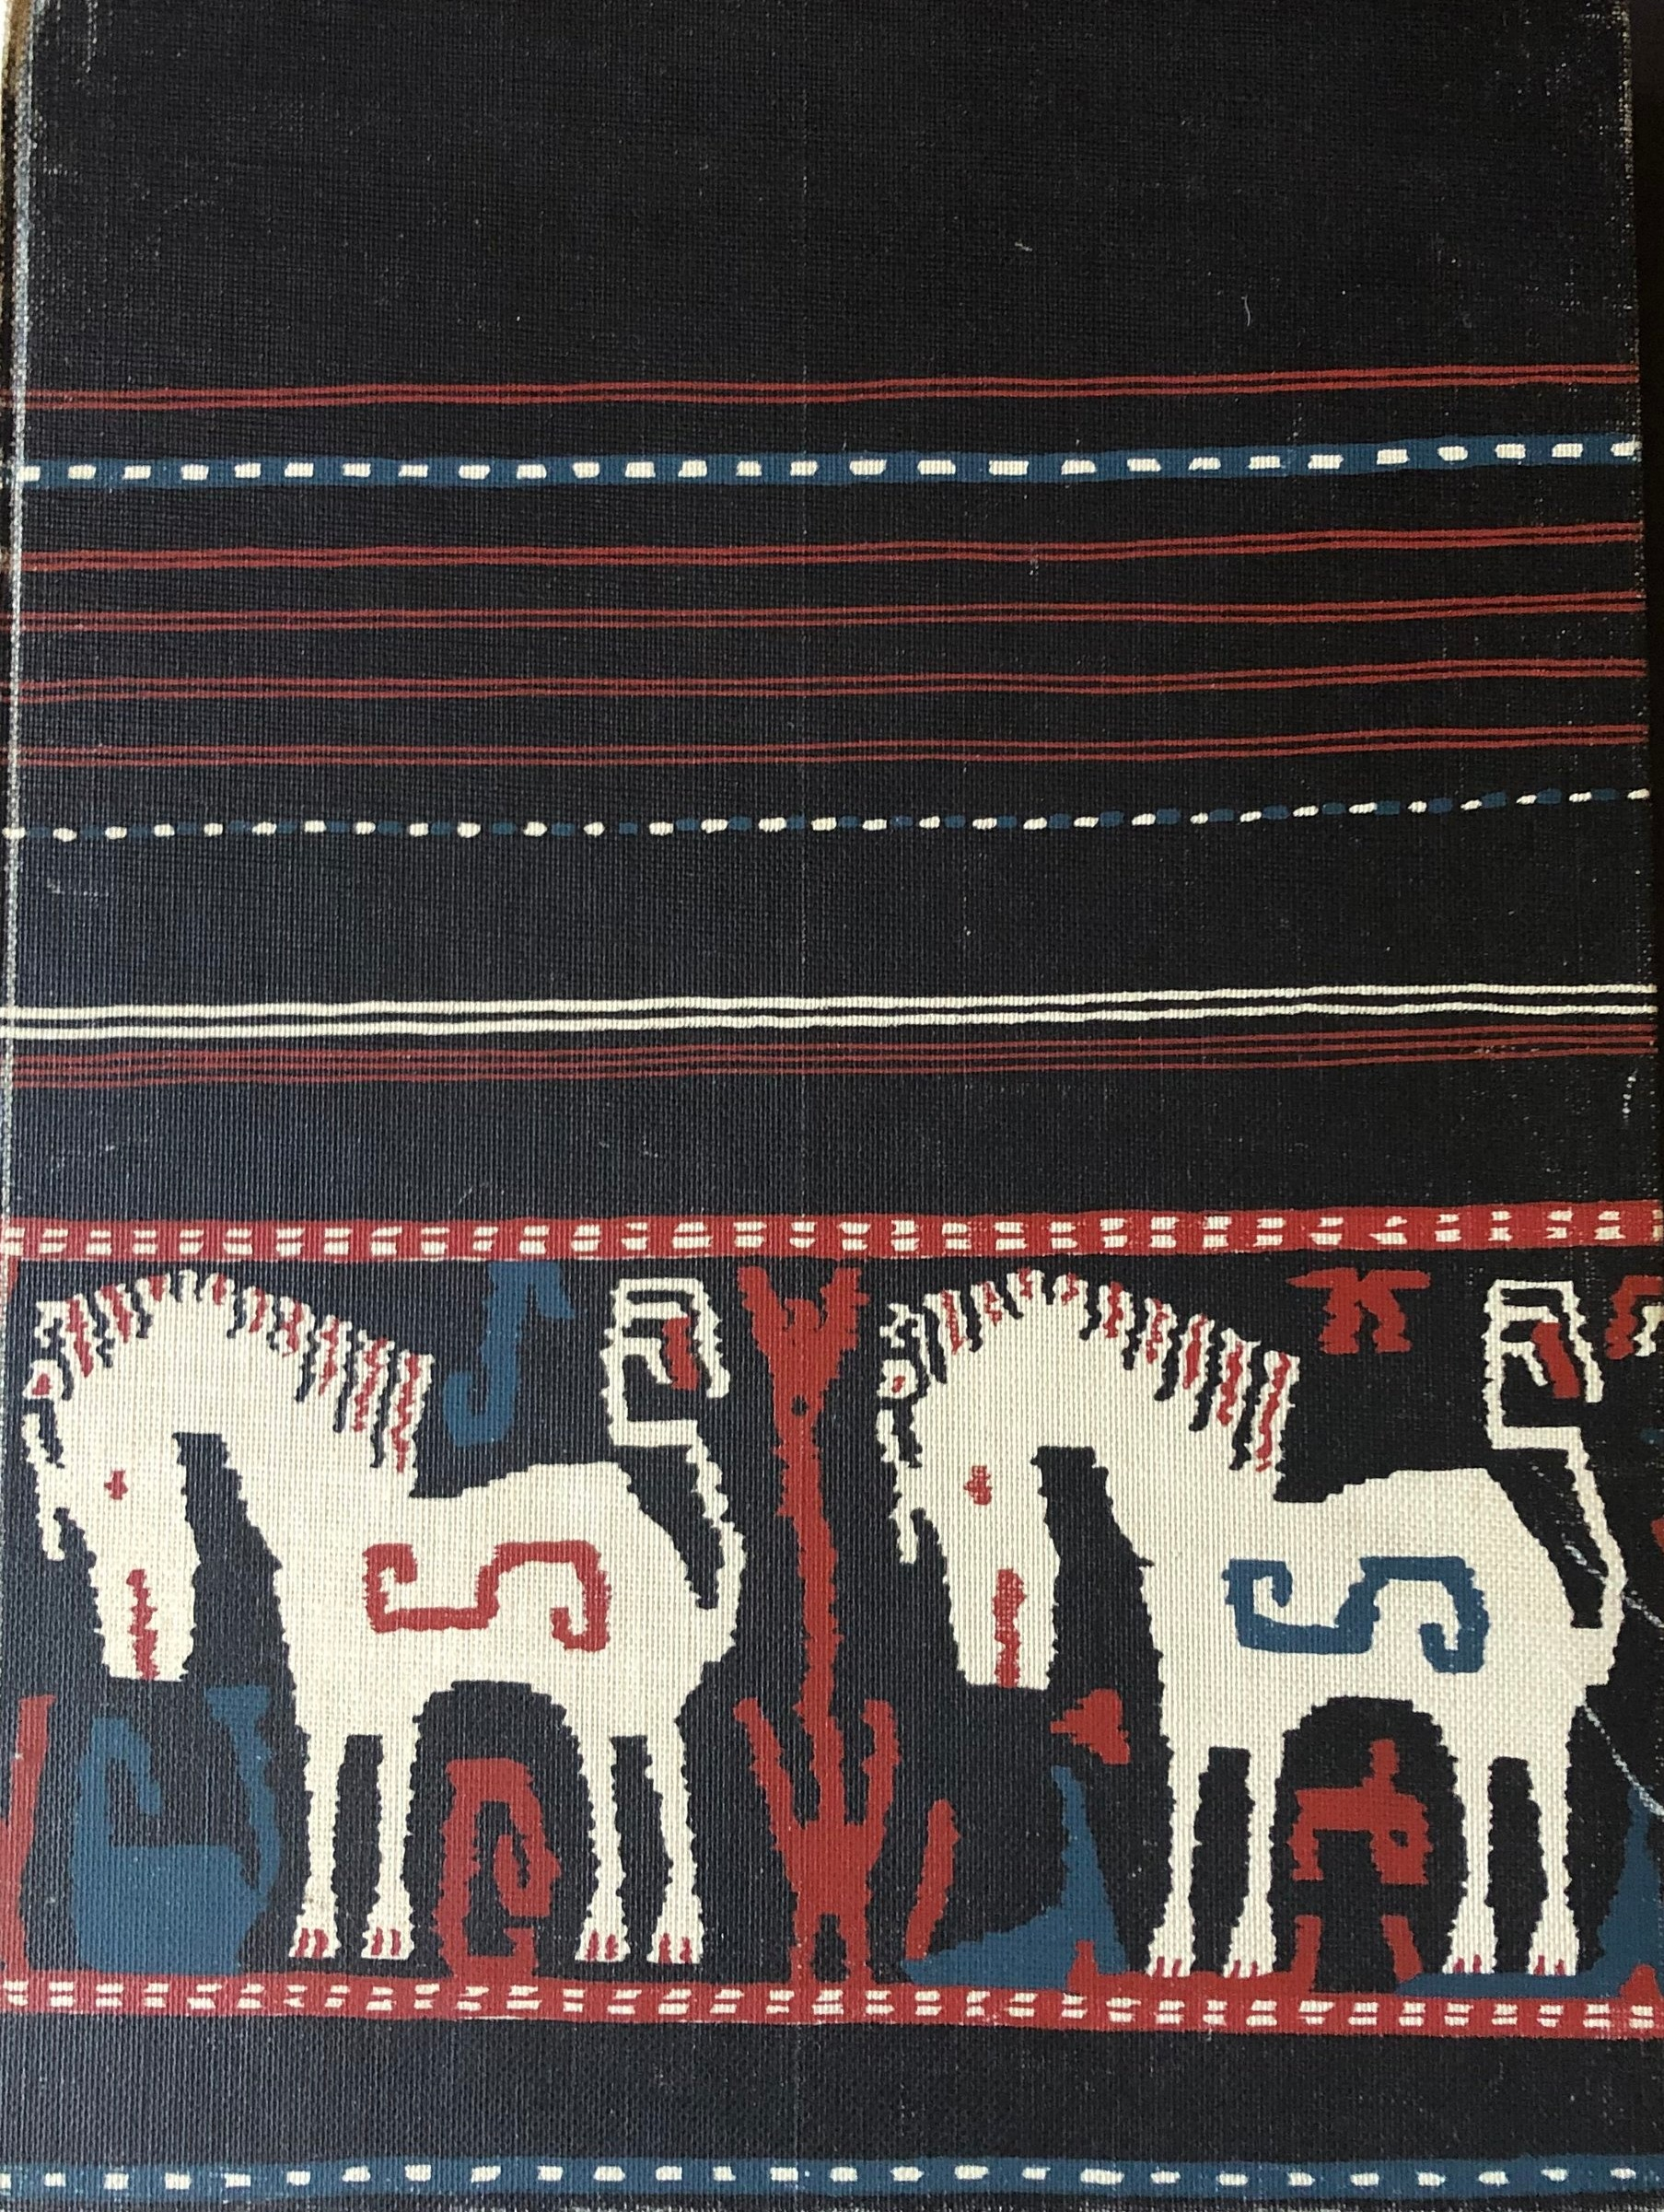 Decorative Arts in Indonesian Textiles Laurens Langewis Frits A. Wagner